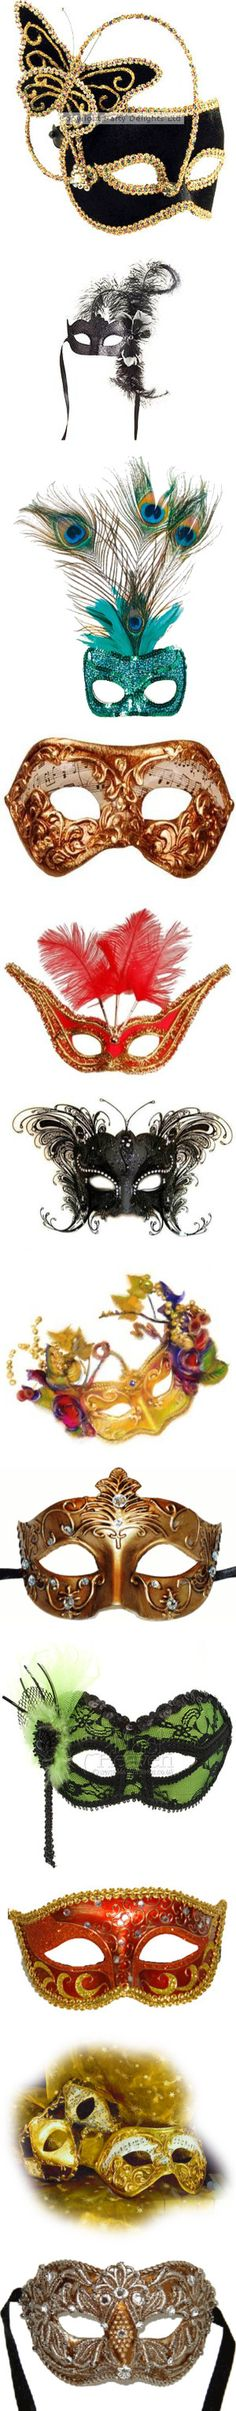 """""""masquerade masks"""" by terrilewis ❤ liked on Polyvore"""